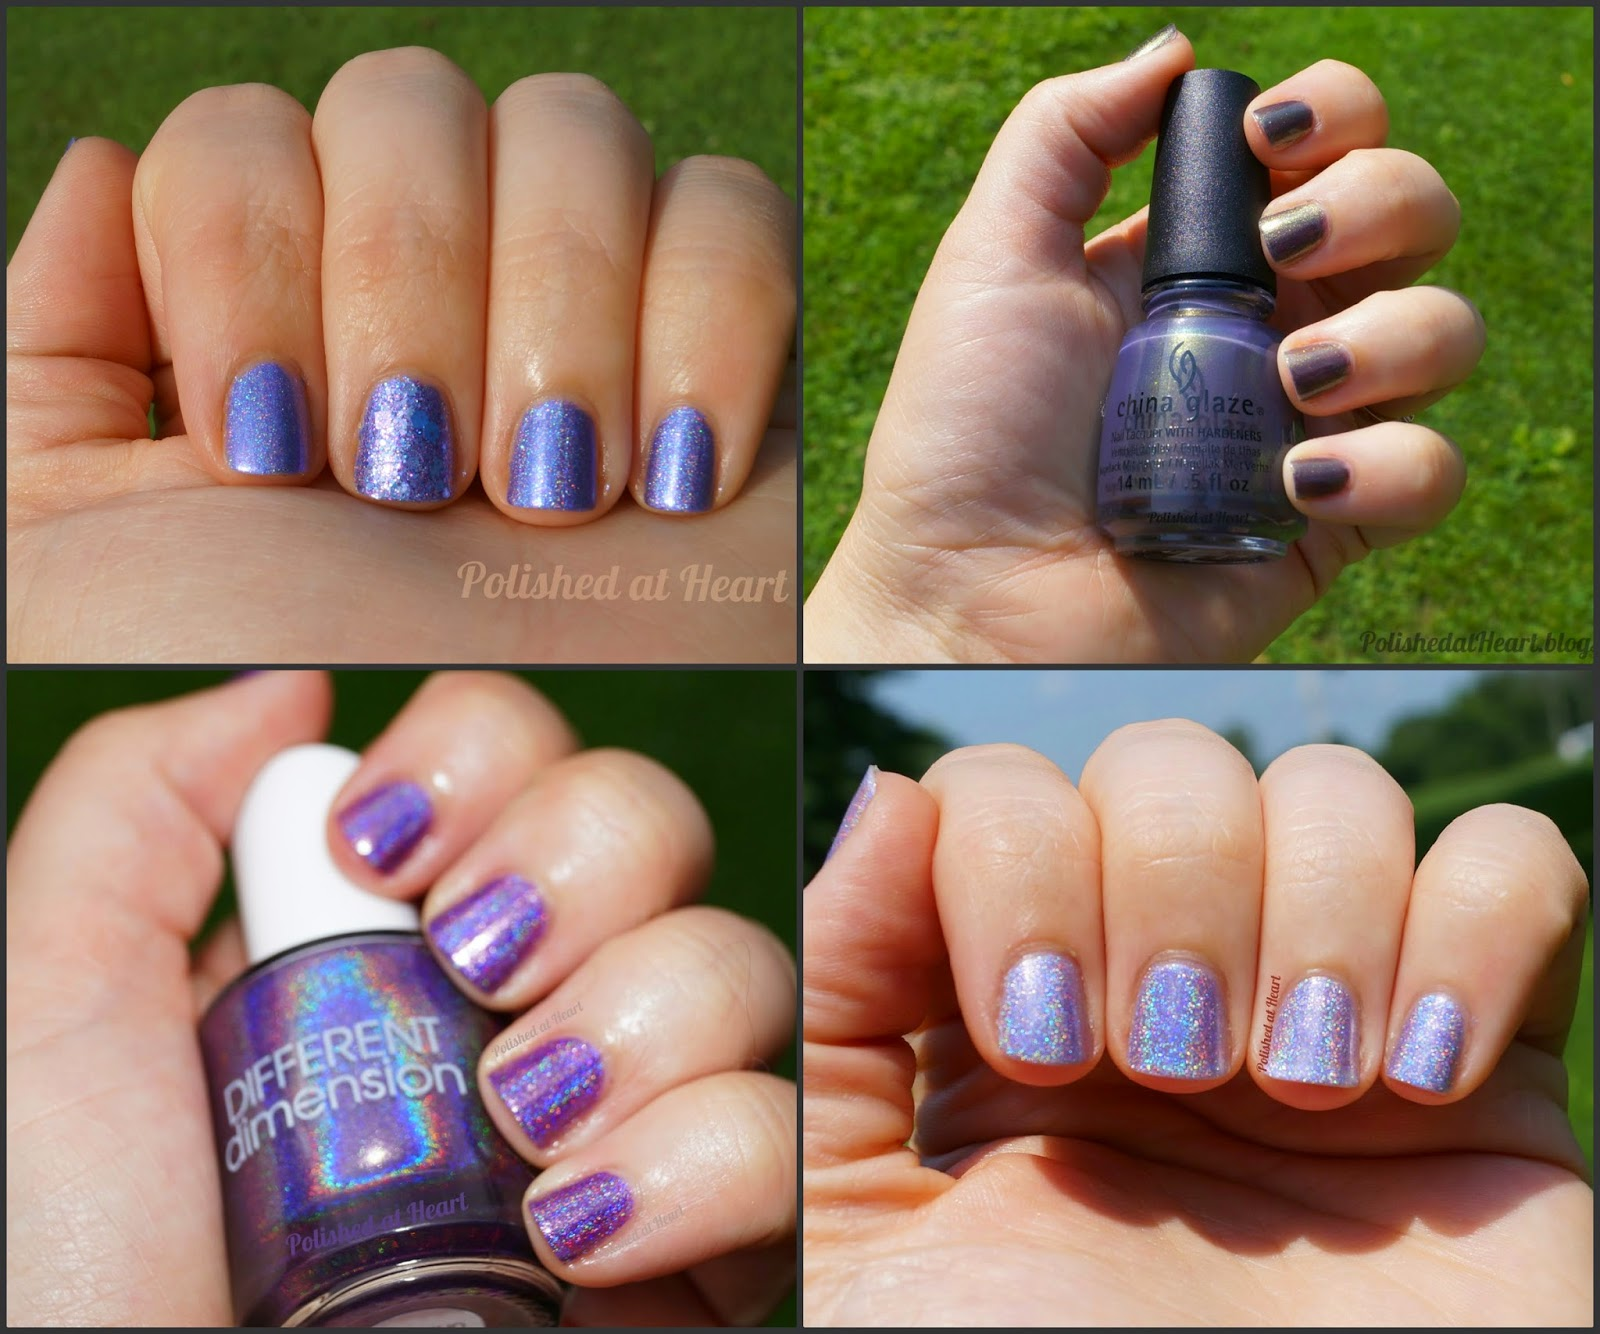 BEGL, ATC, DD, Different Dimension, China Glaze, Lynnderella, blue-eyed girl lacquer, above the curve